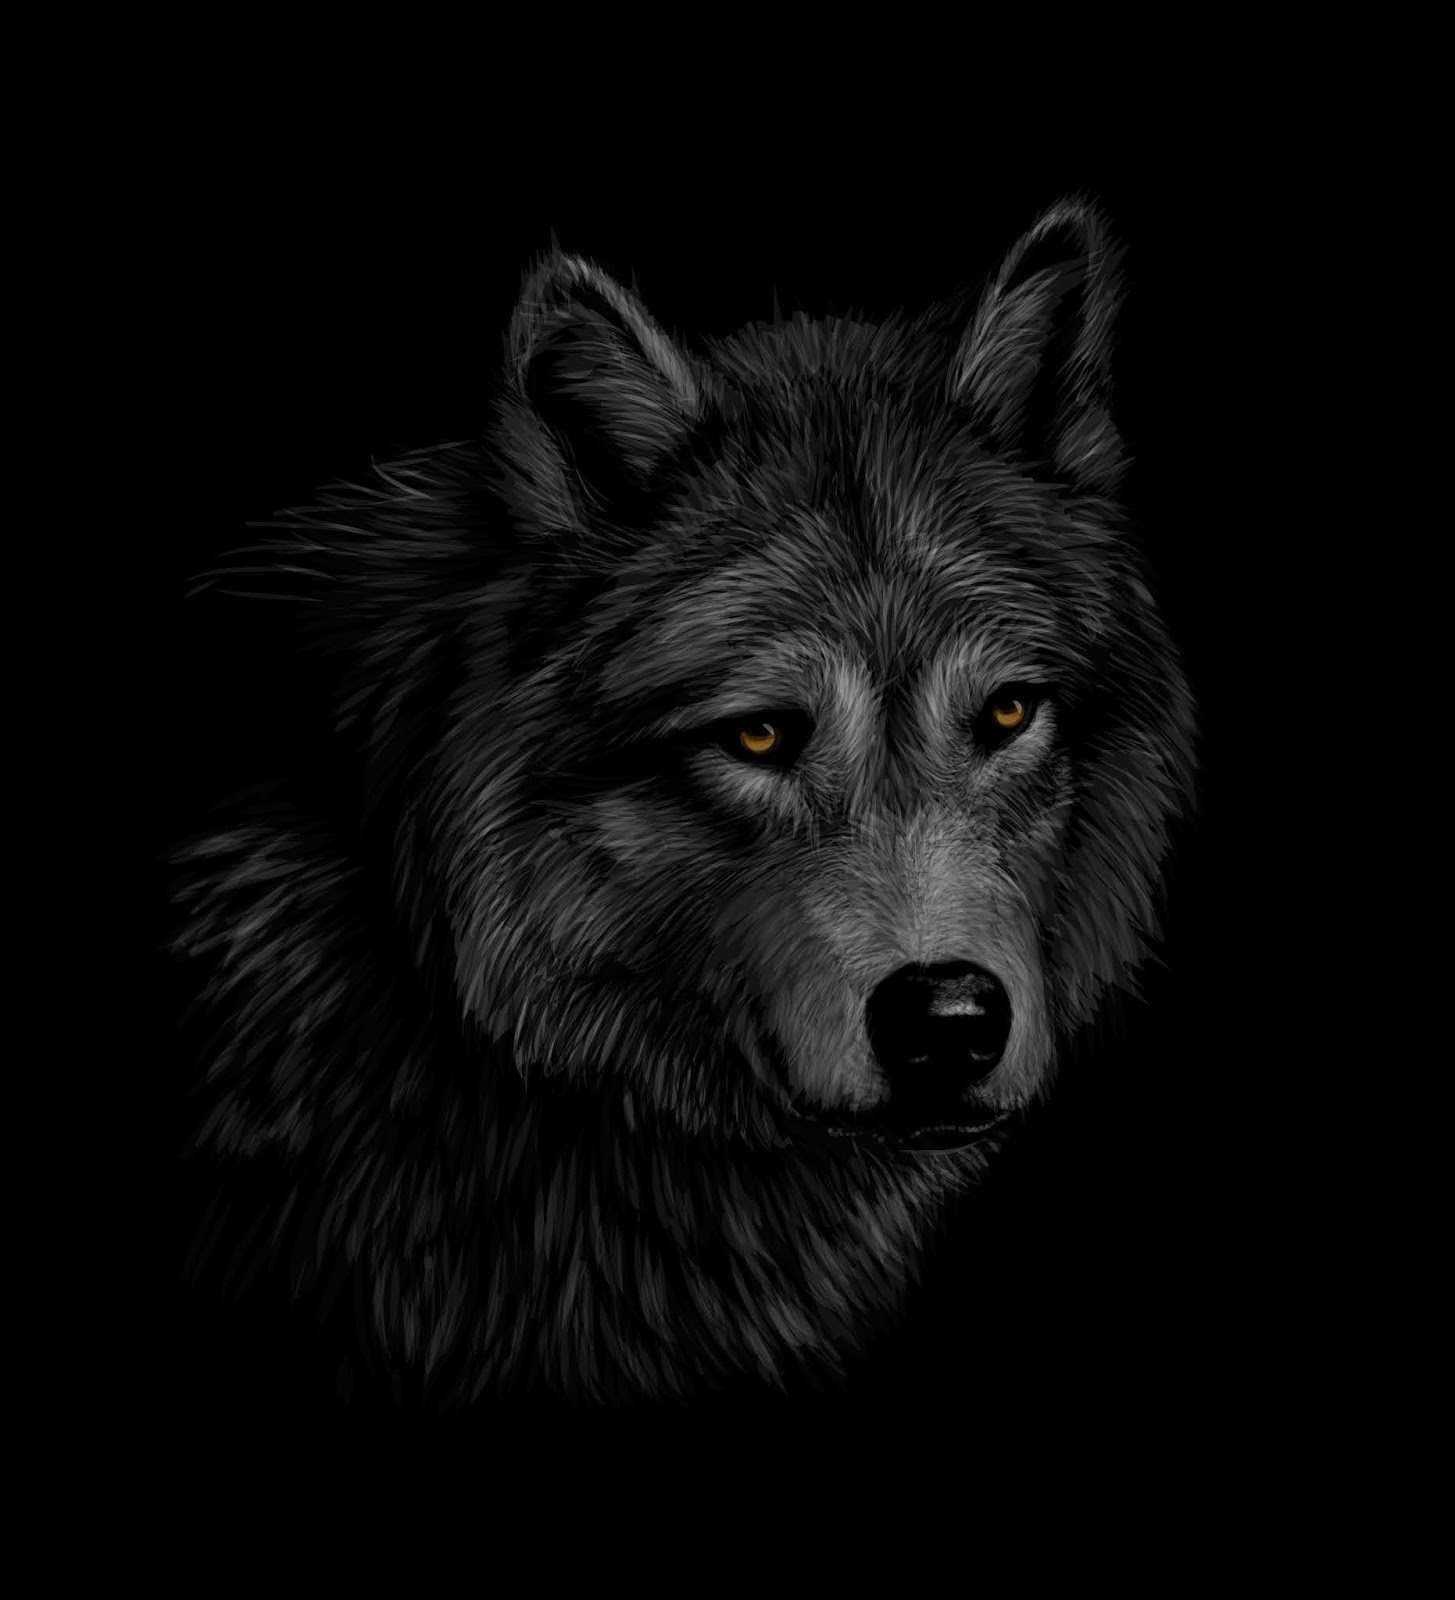 Portrait Wolf Head Black Background Vector Illustration Free Download Vector CDR, AI, EPS and PNG Formats